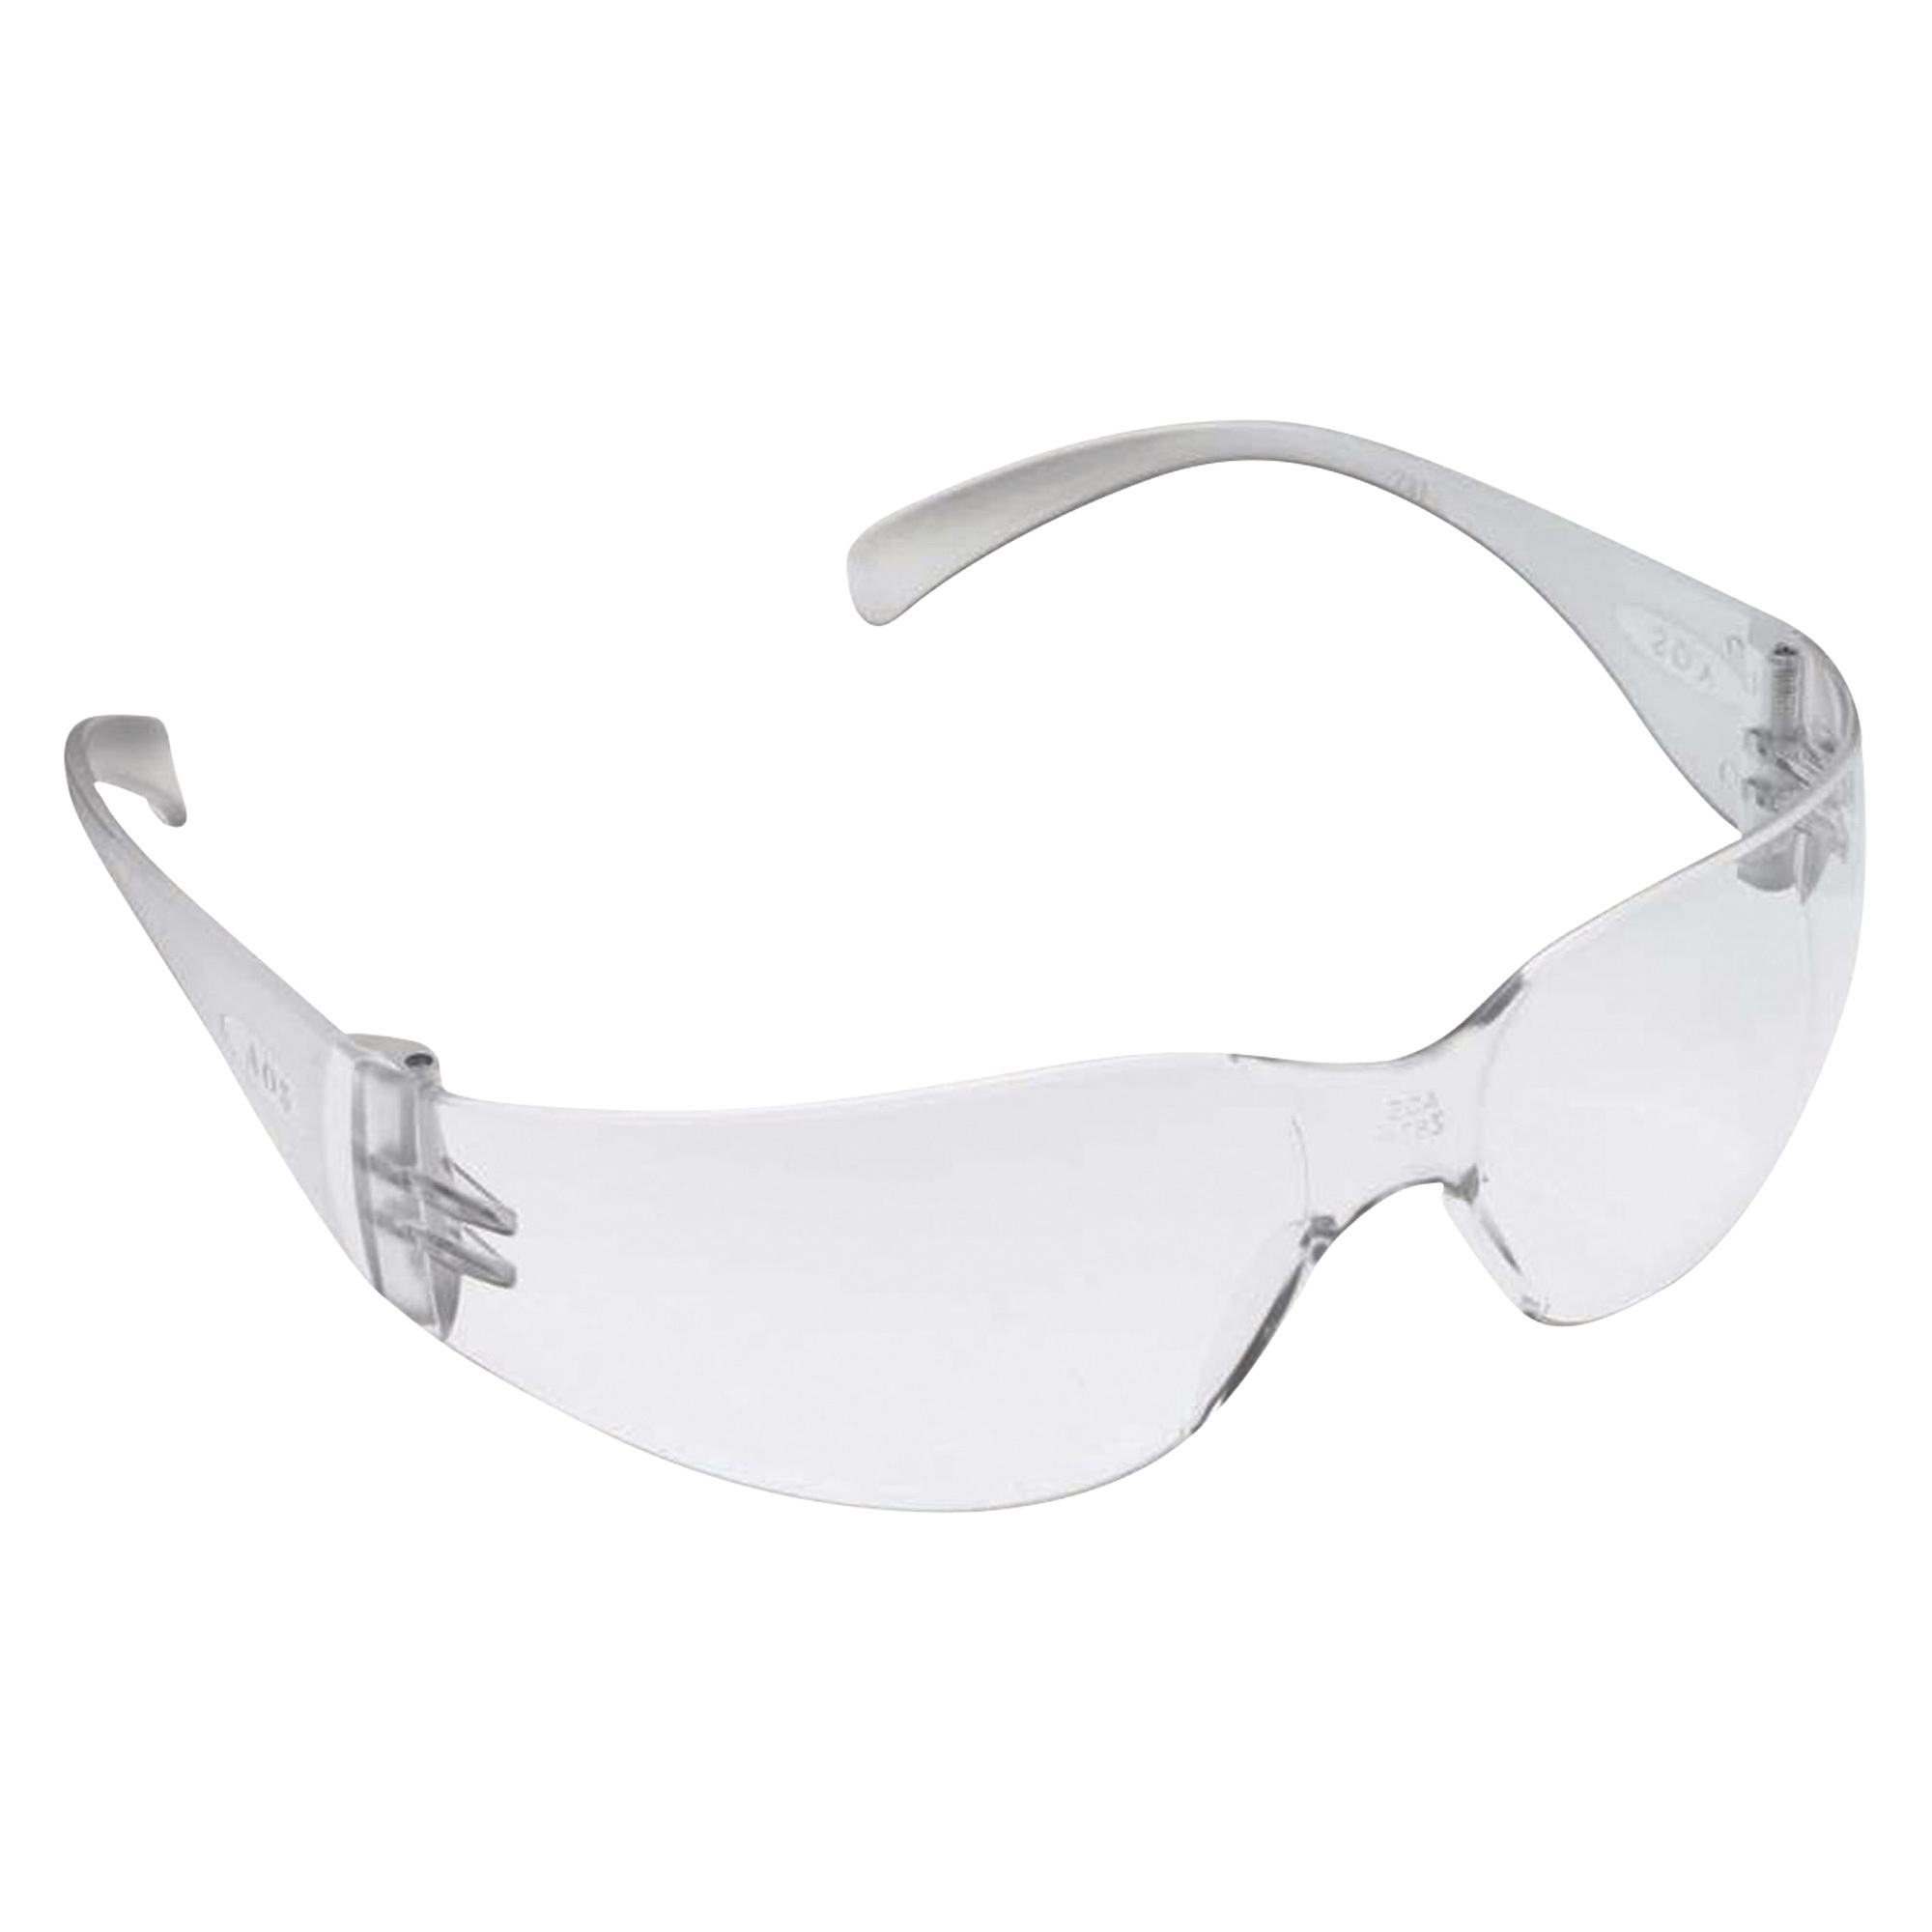 9039aba871c 3M Virtua Protective Safety Glasses — Clear Lens